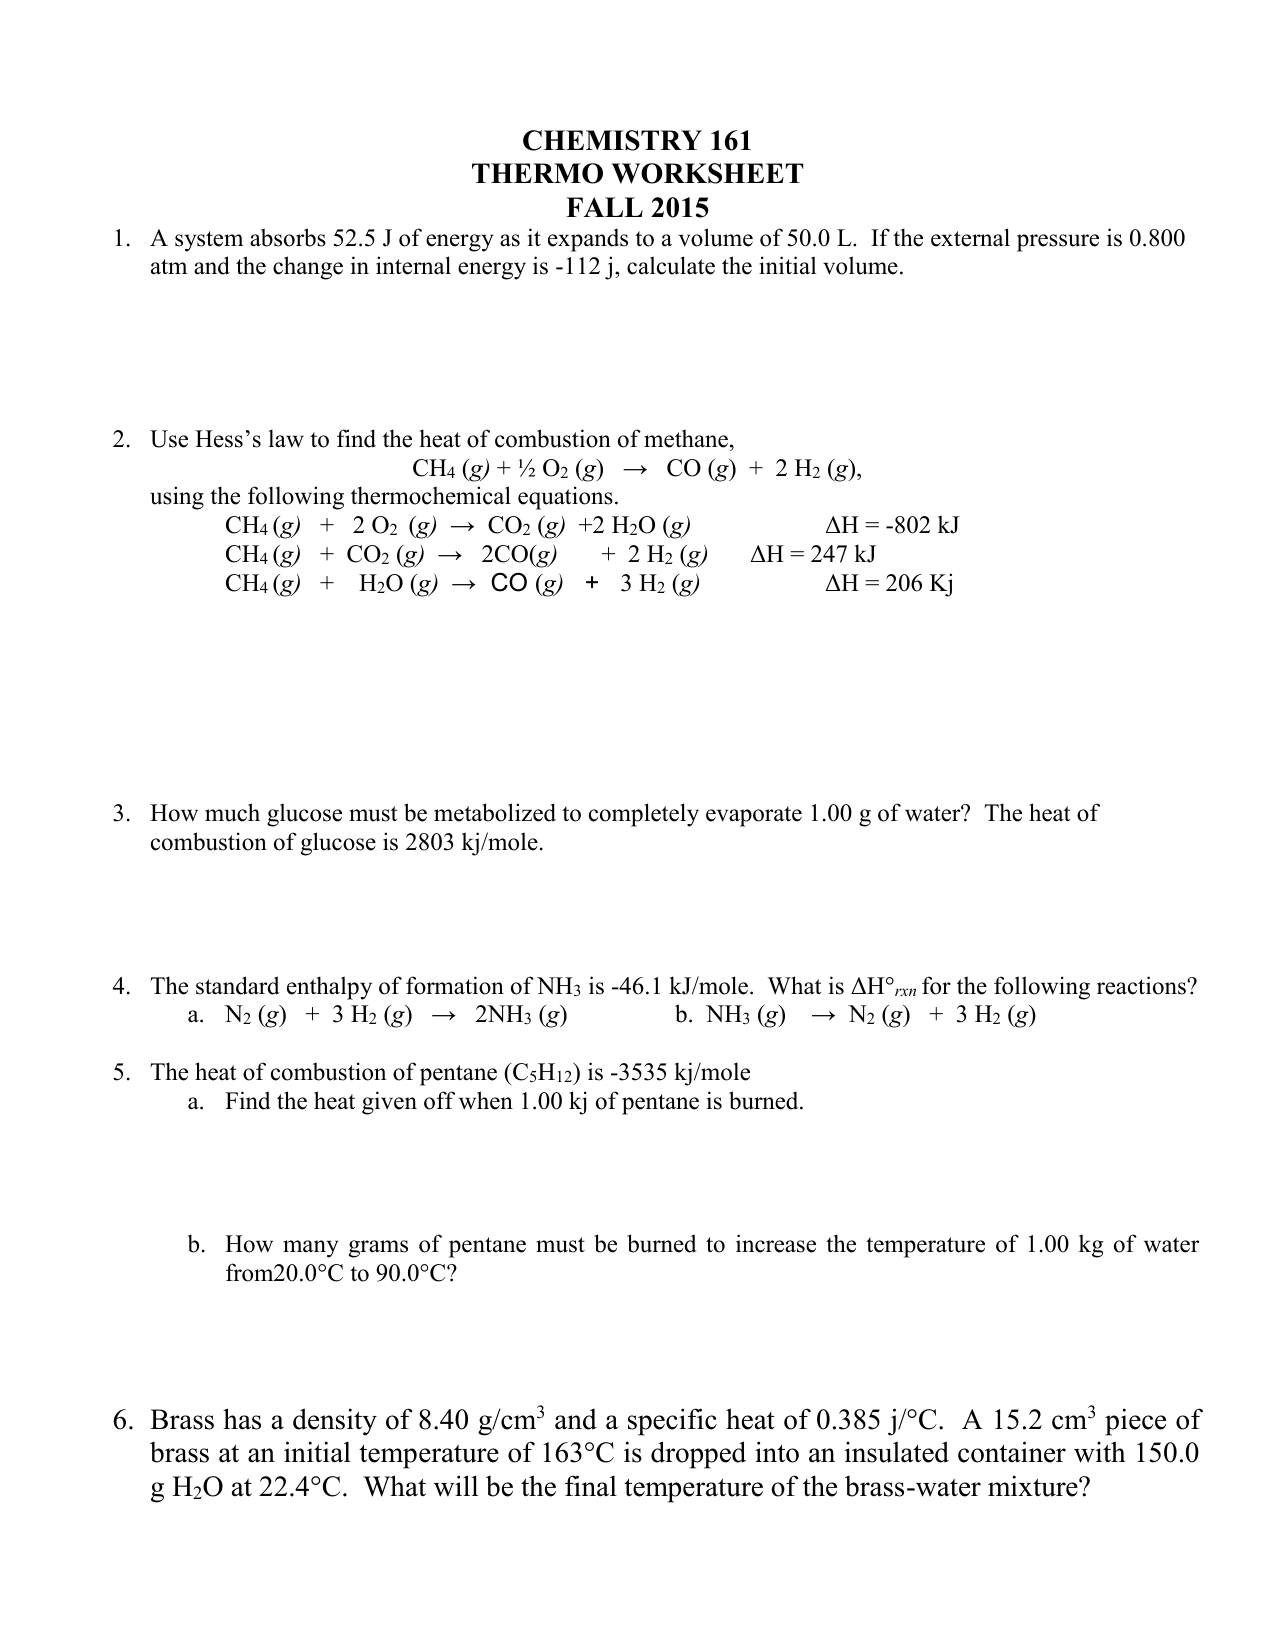 34 Thermochemistry Worksheet 1 Answers